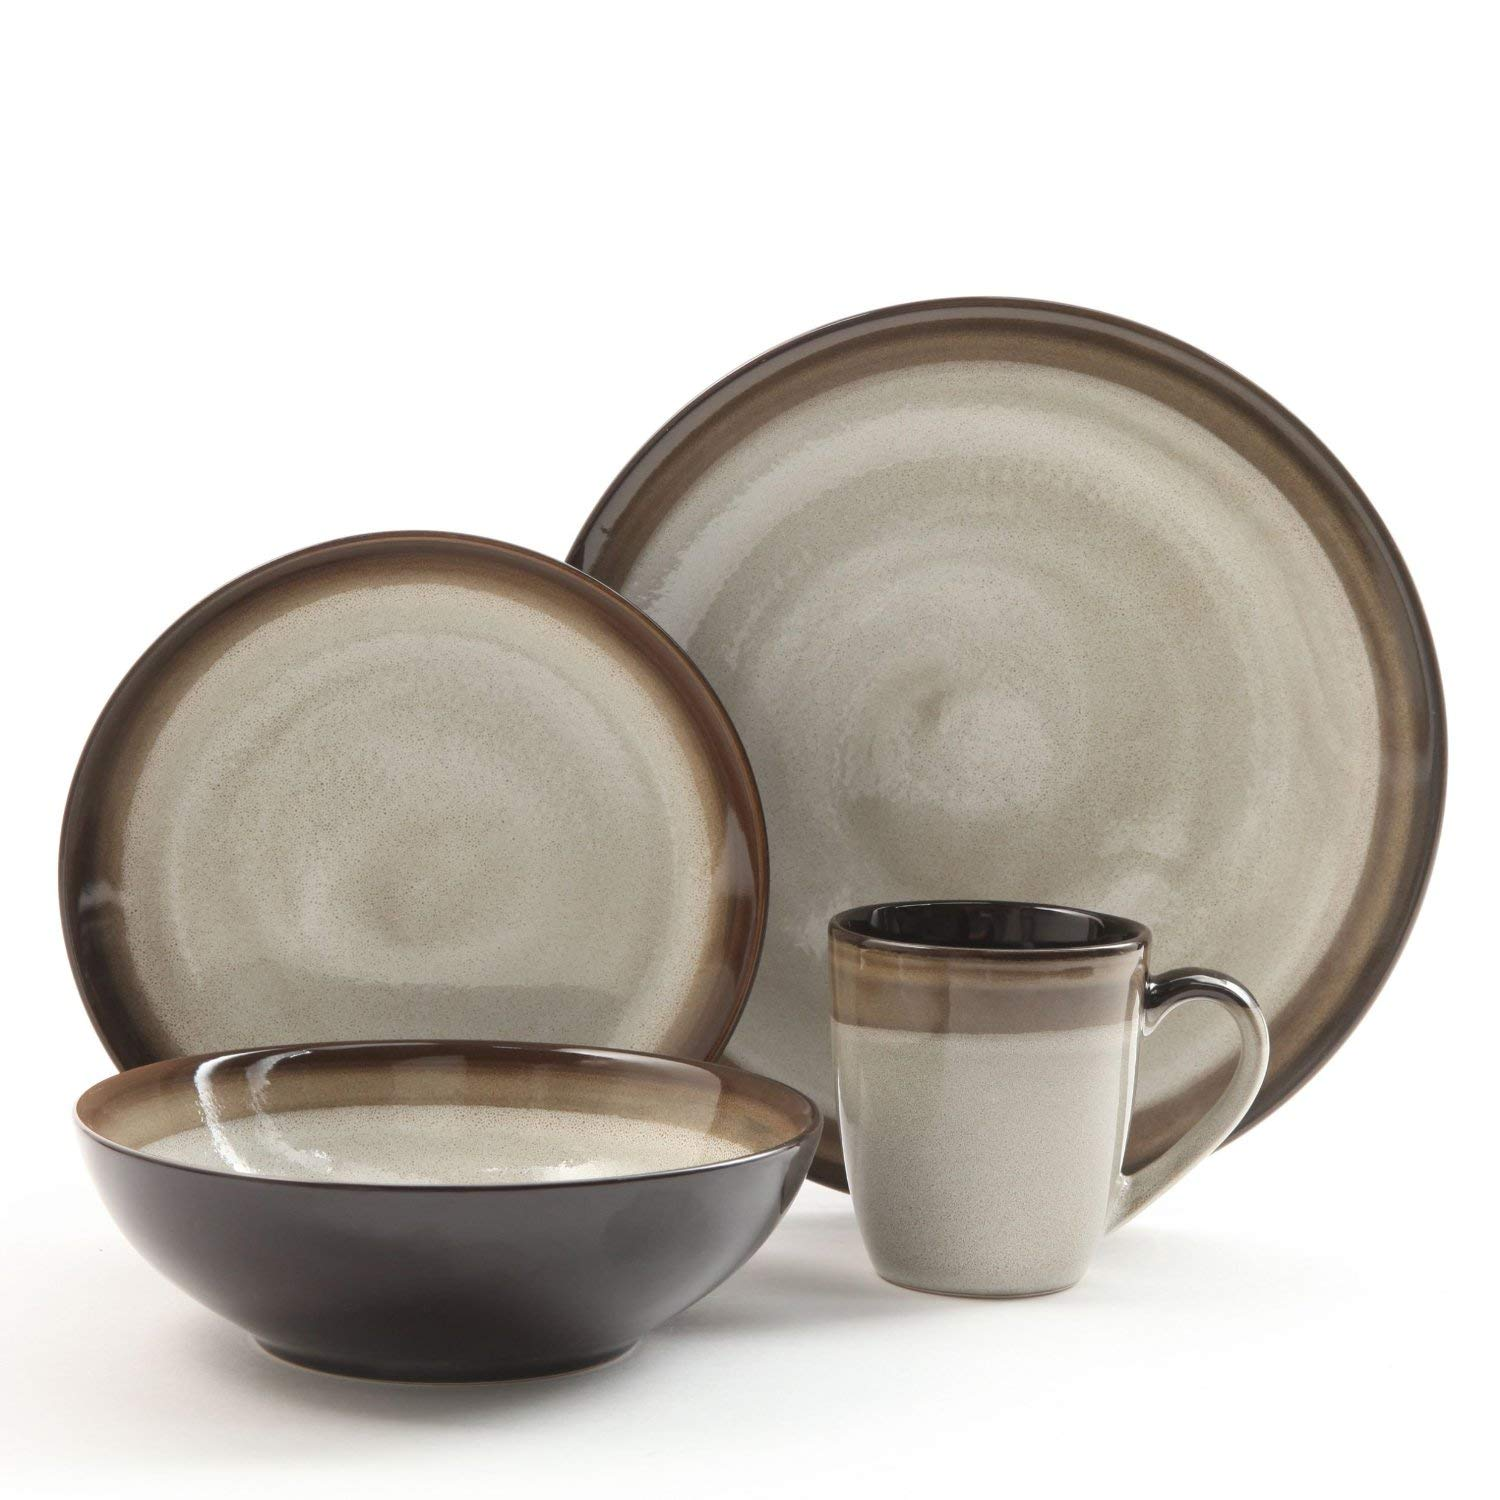 Gibson Elite 90602.16RM Couture Bands 16-Piece Dinnerware Set, Brown and Cream